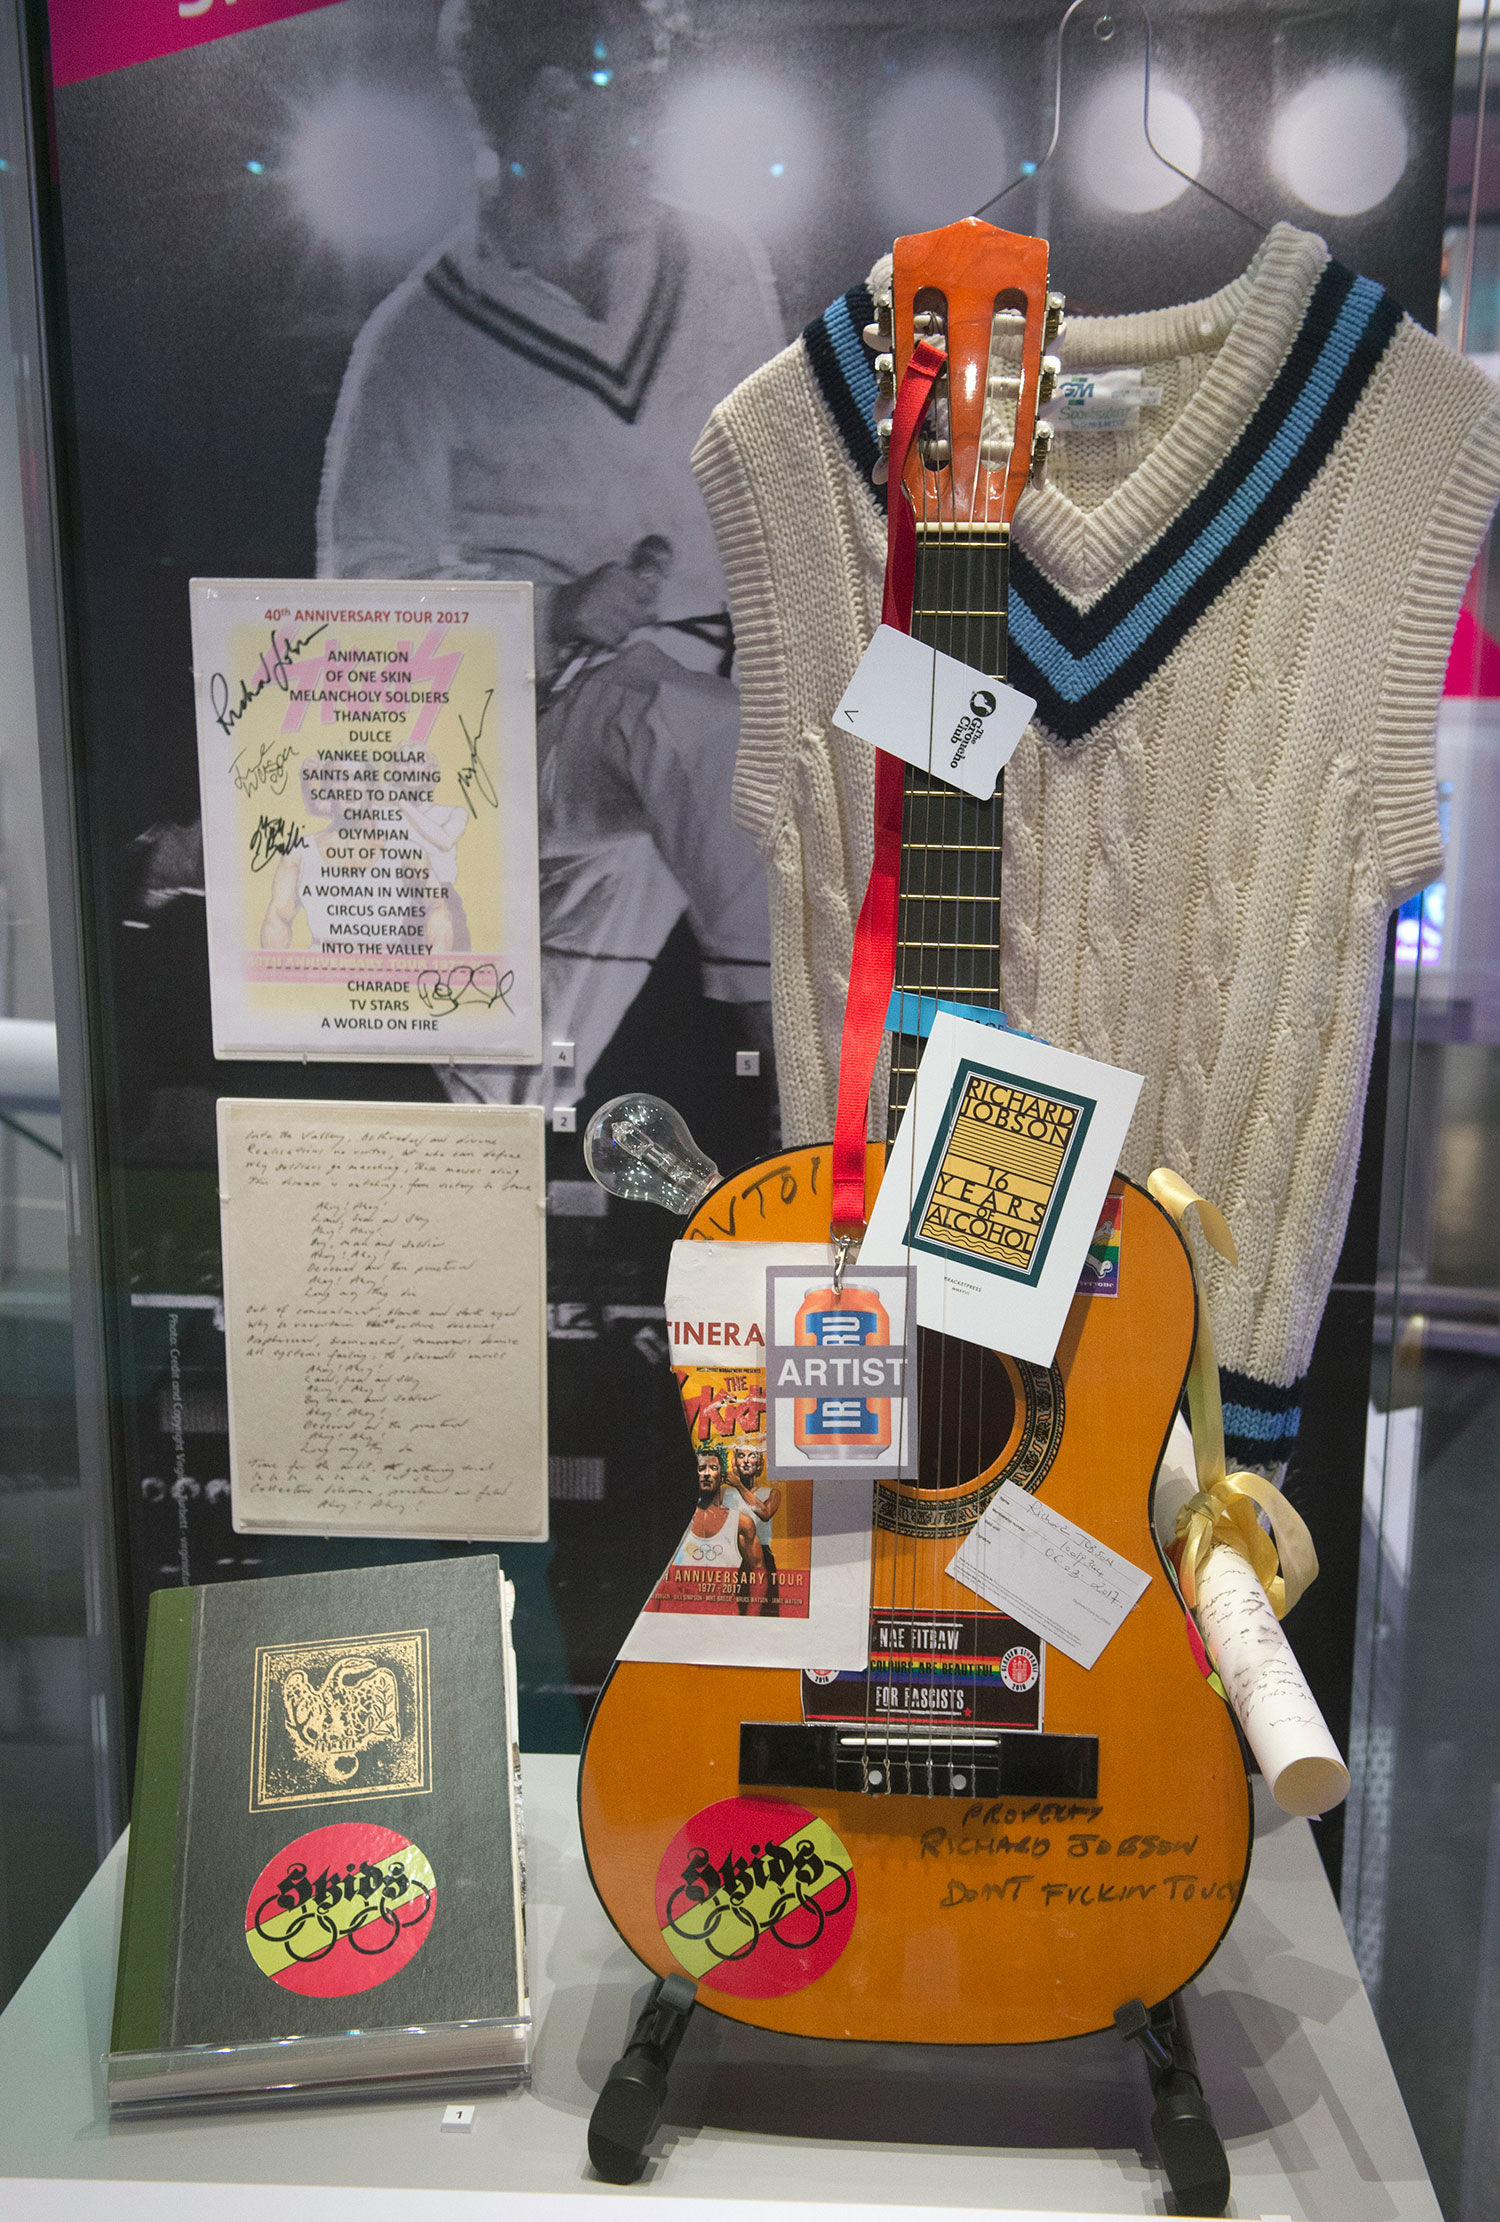 Items on loan from the Skids in the 'New Waves' area of the Rip It Up exhibition.